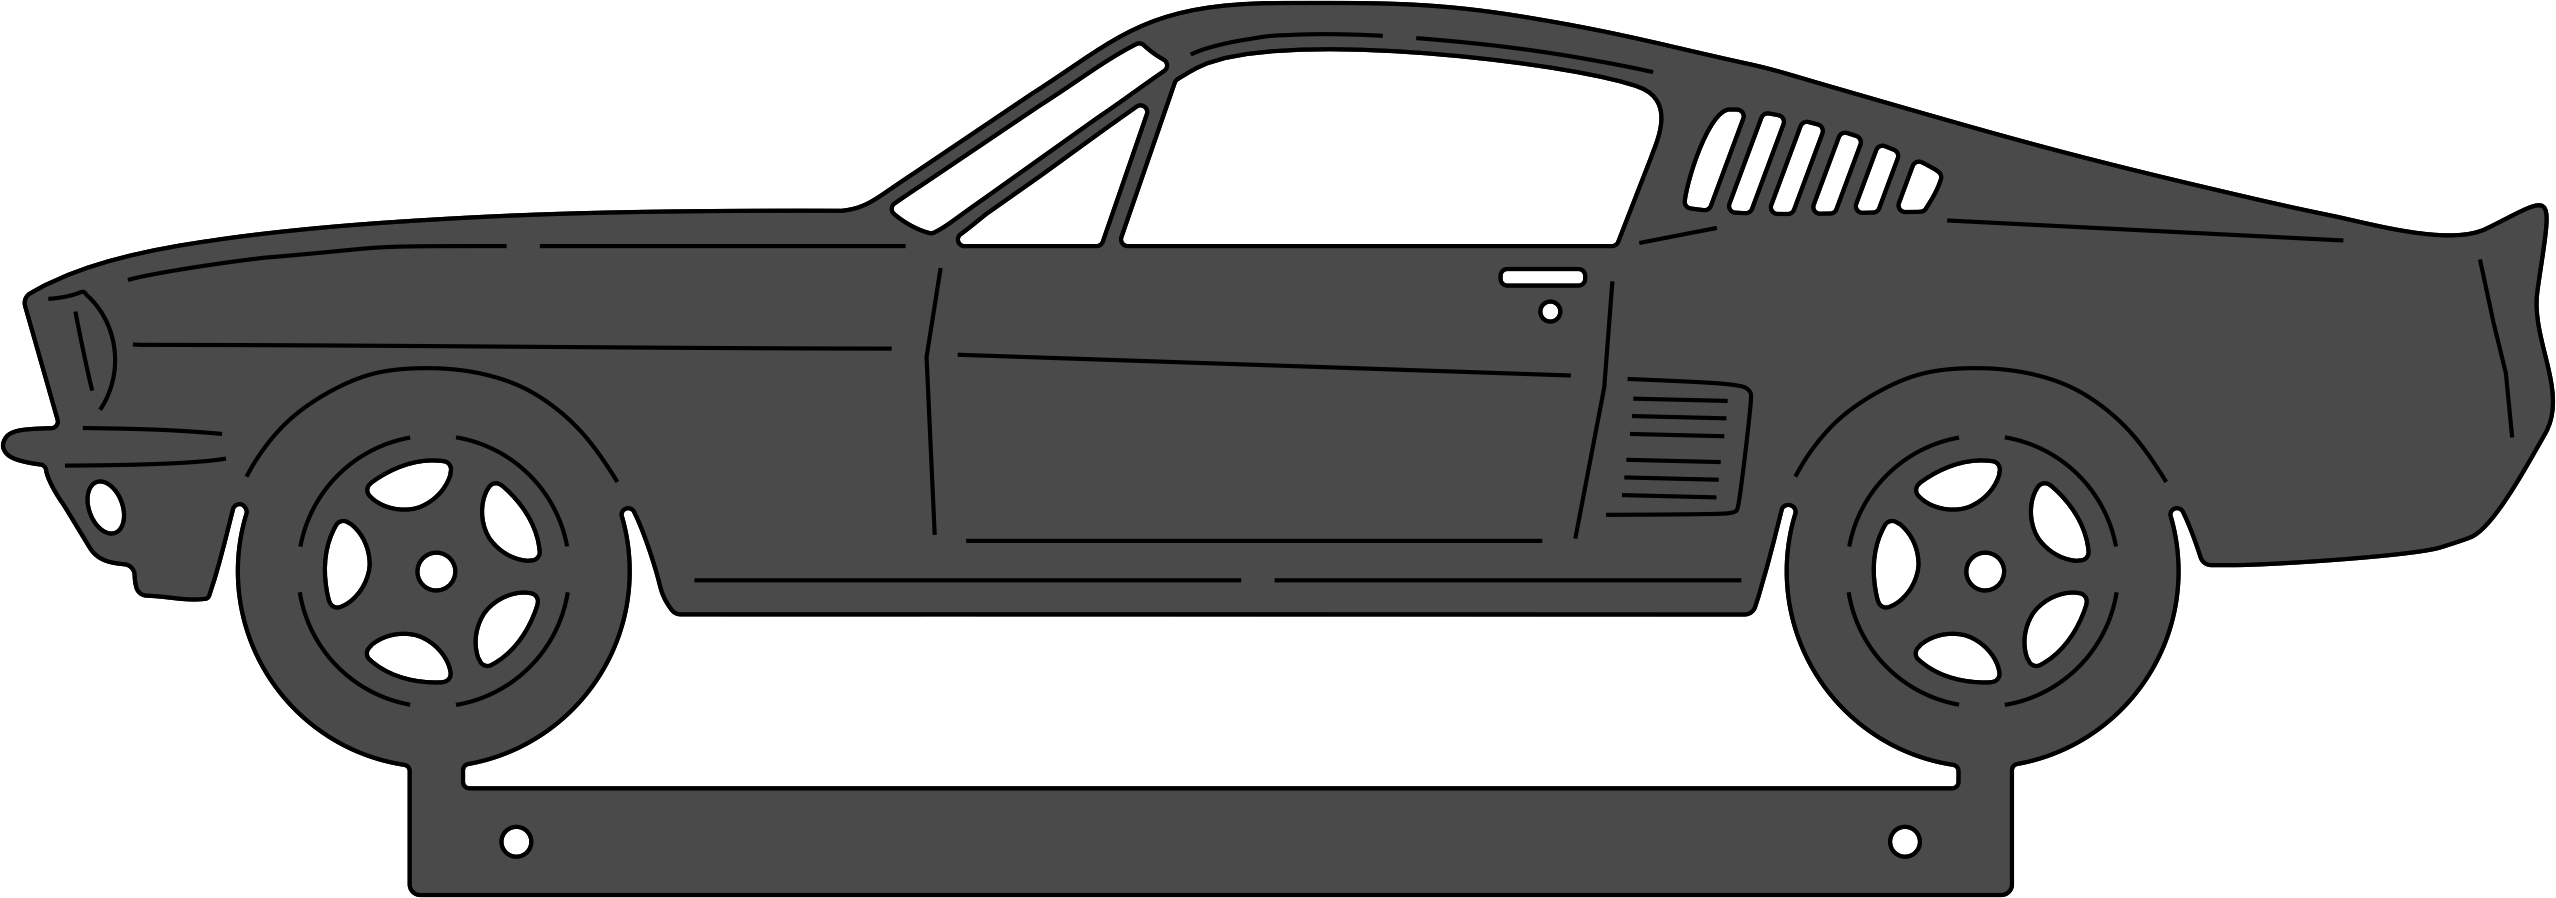 67 mustang clipart.